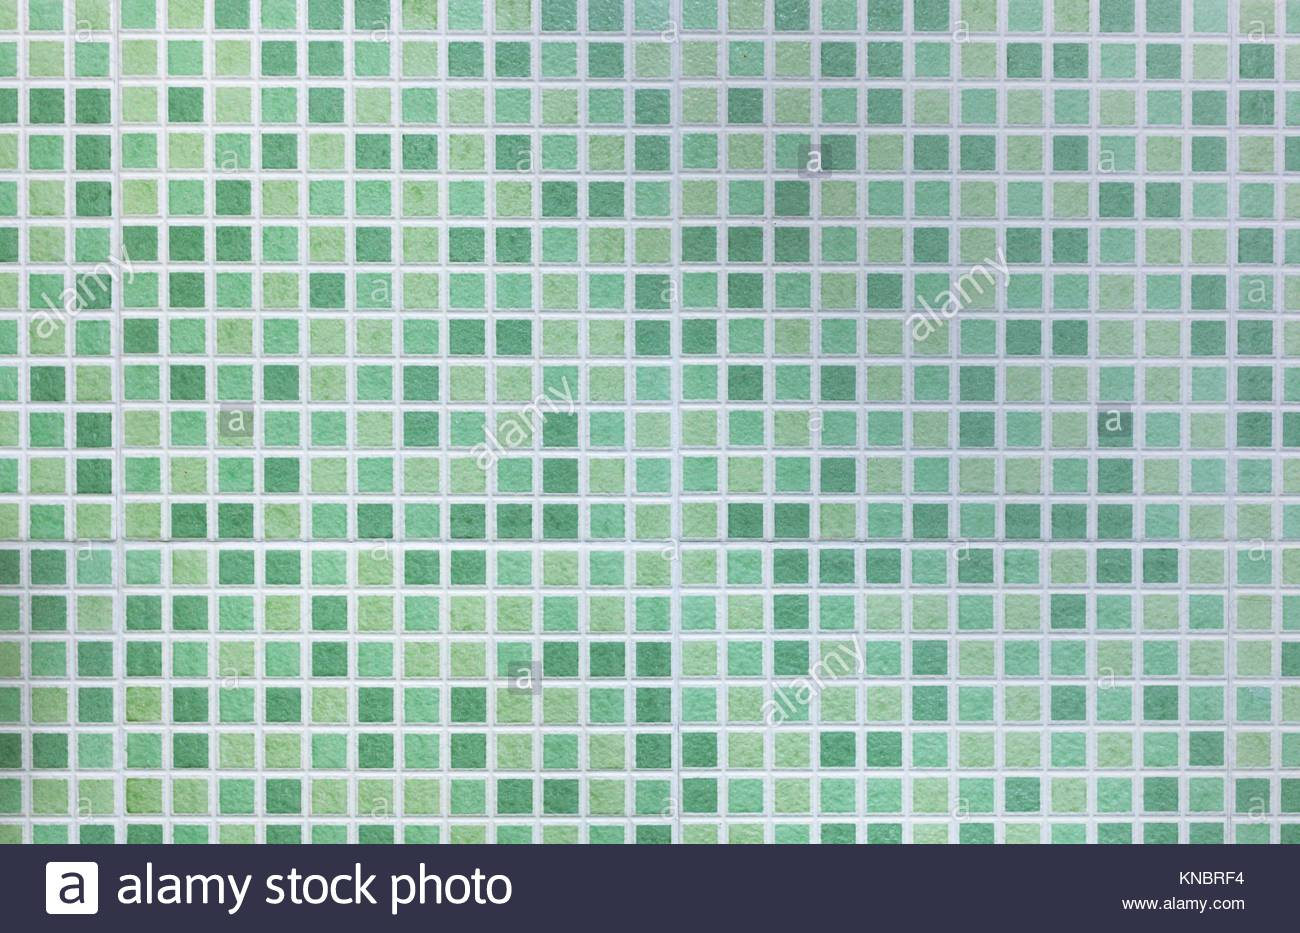 Green ceramic floor tile stock photos green ceramic floor tile tile texture background of bathroom or swimming pool tiles on wall stock image dailygadgetfo Image collections